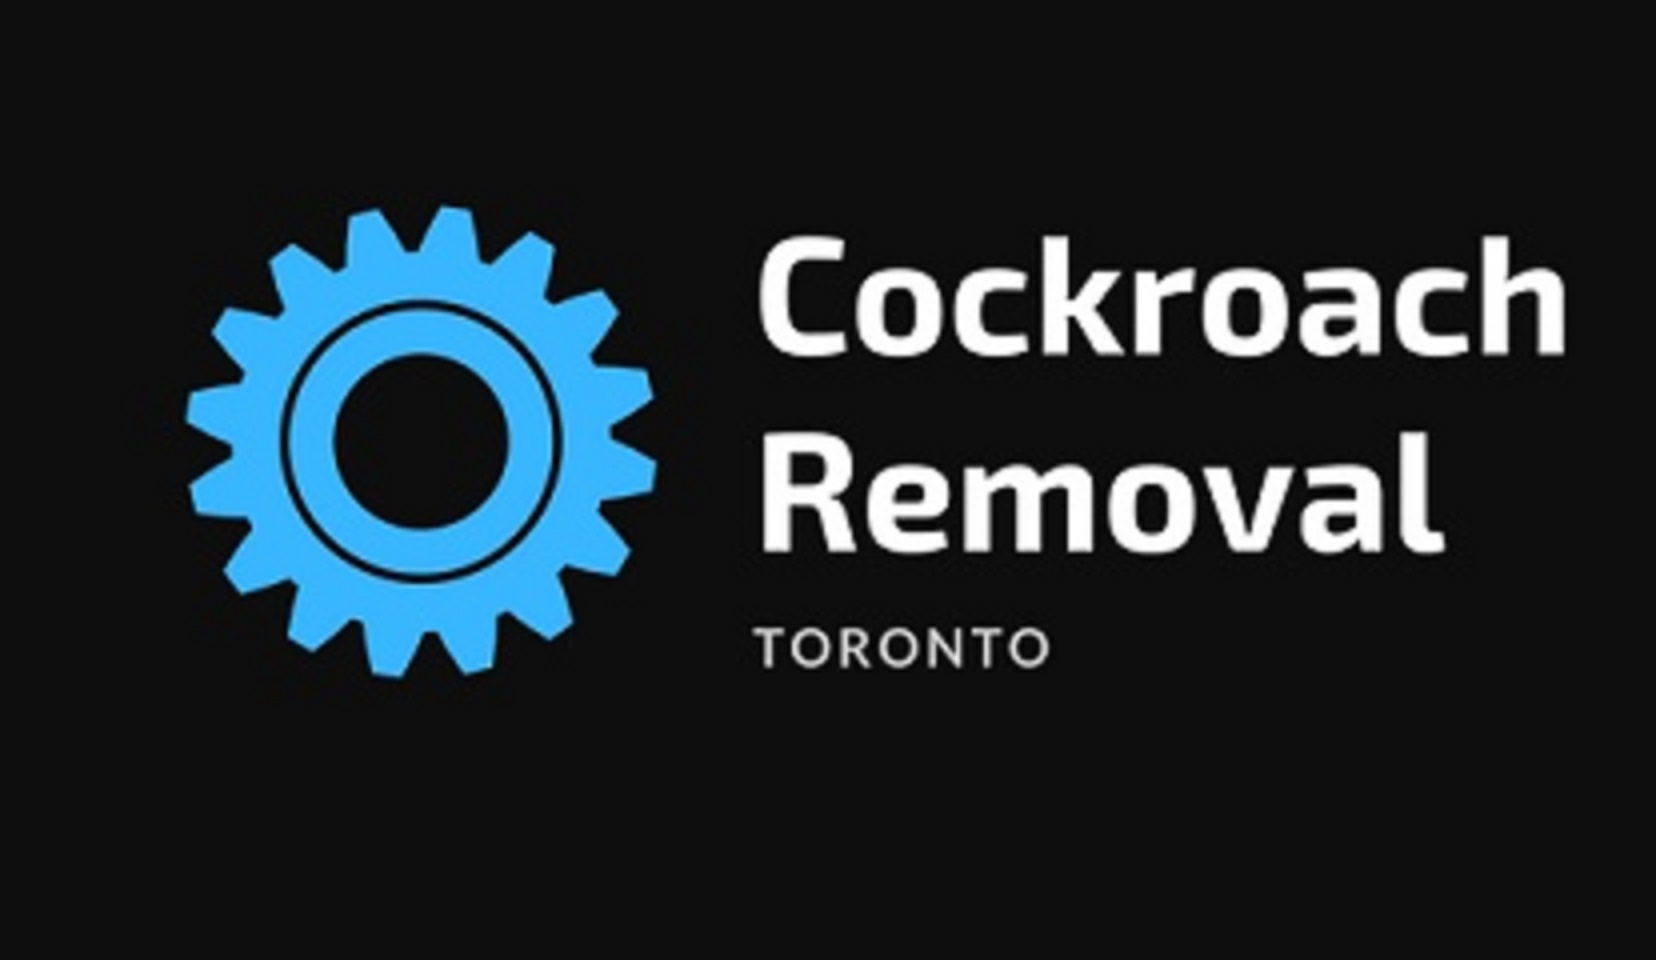 Cockroach Removal/Control Toronto